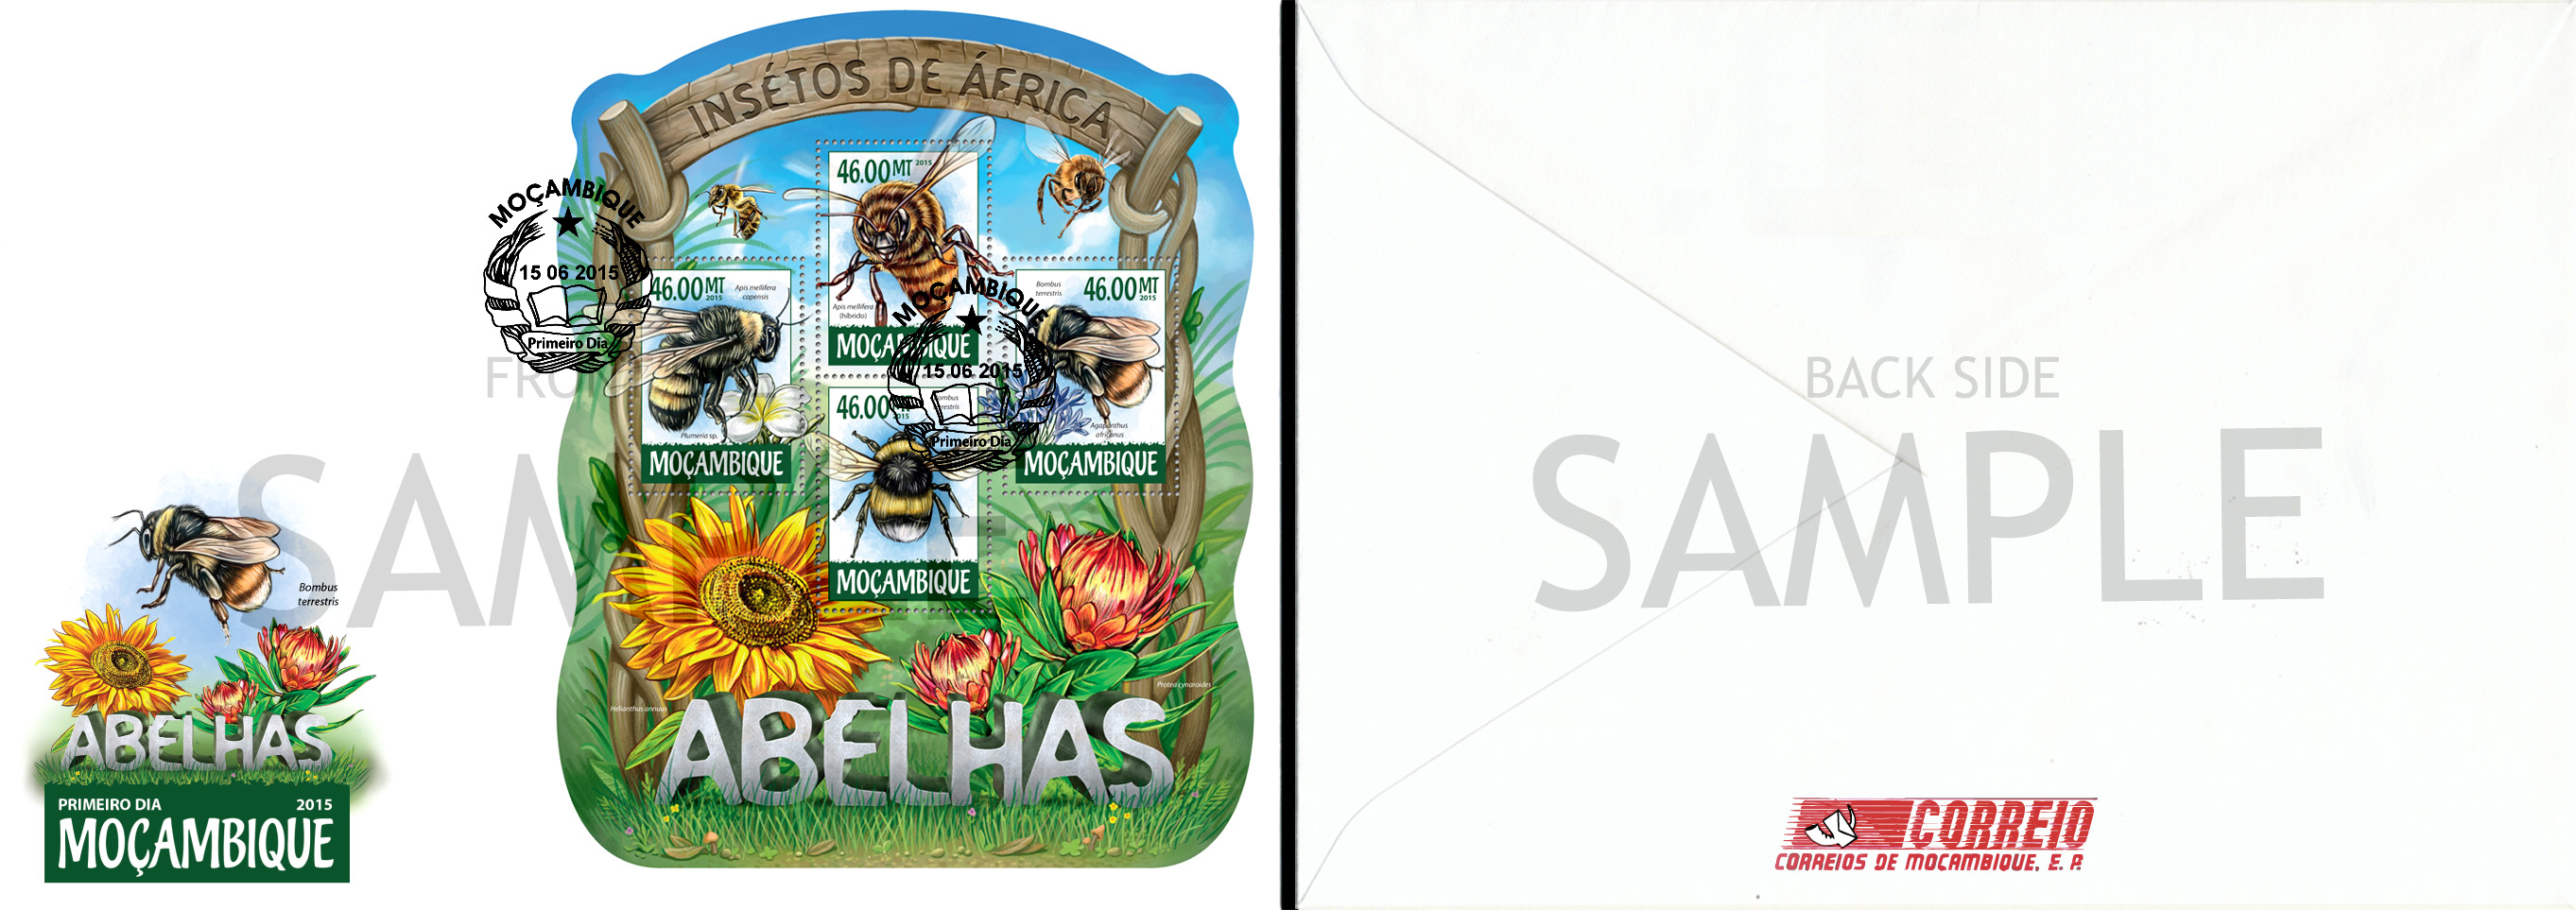 Sample of FDC - Issue of Mozambique postage Stamps